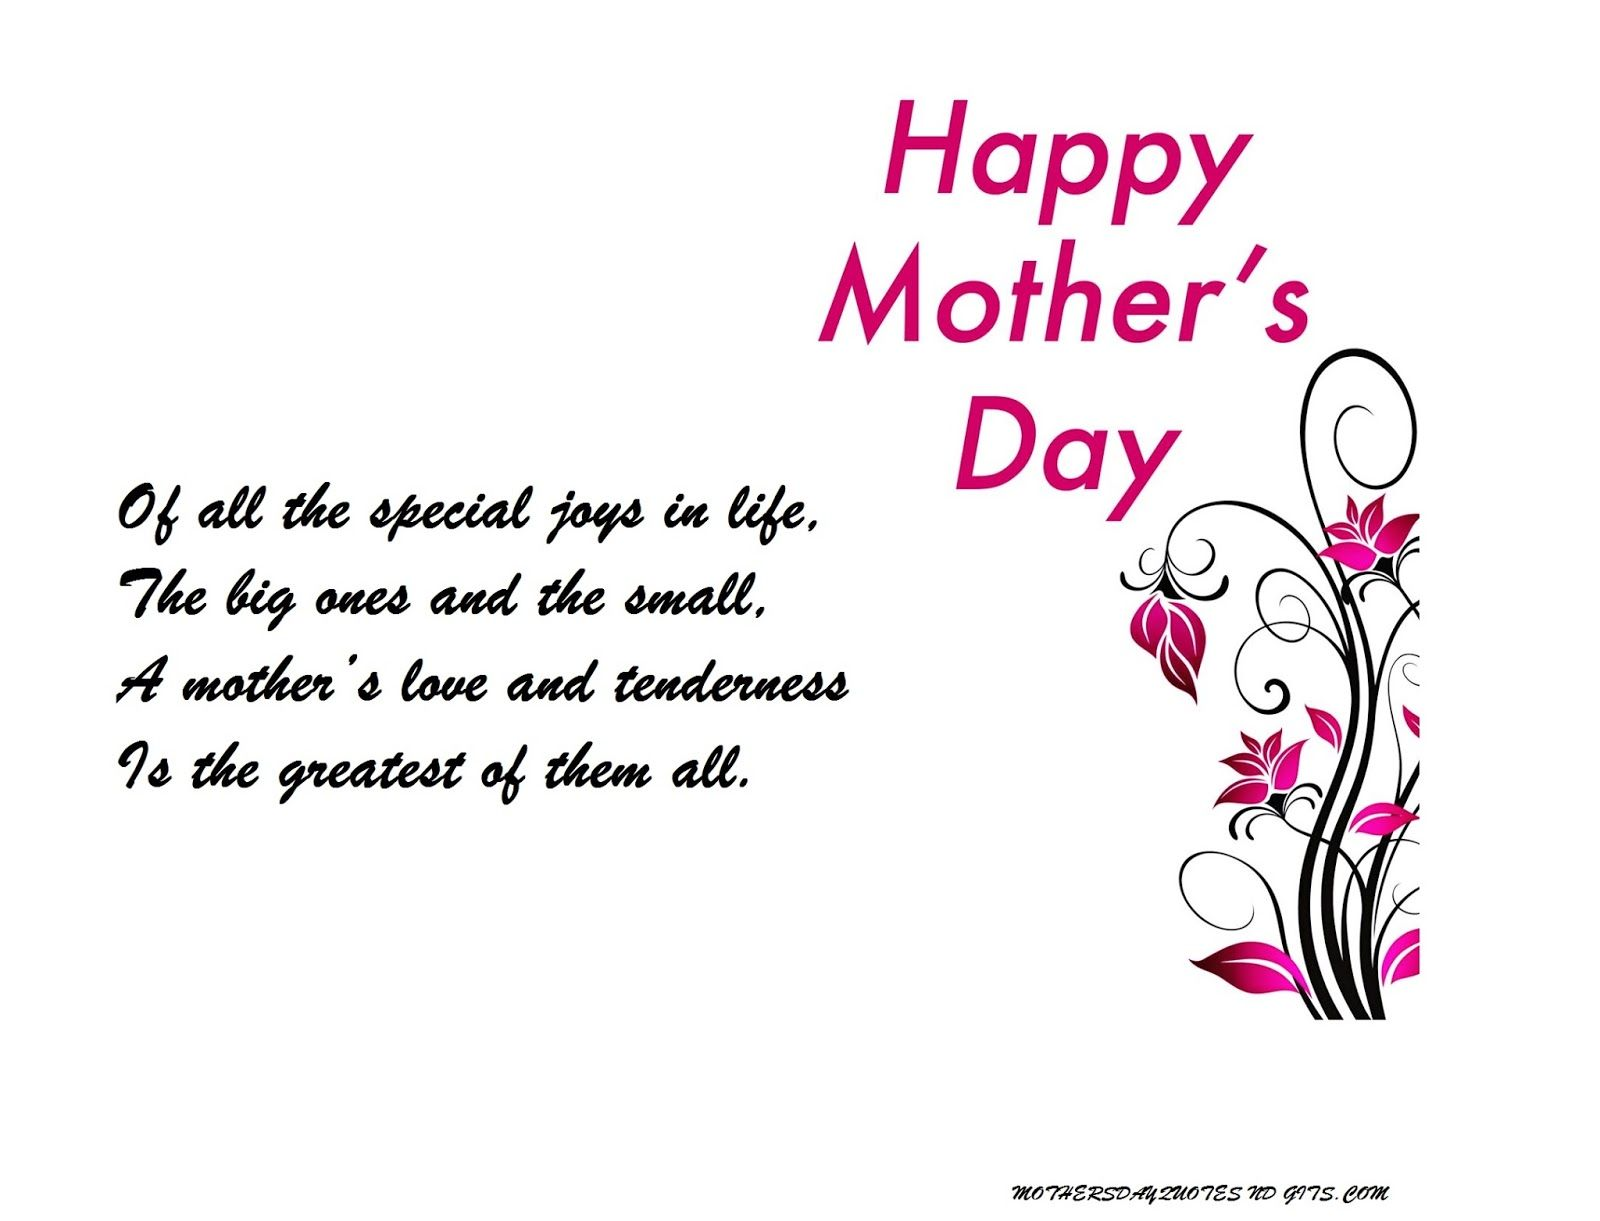 Best Short Poems On Mothers Day For Sons And Daughters